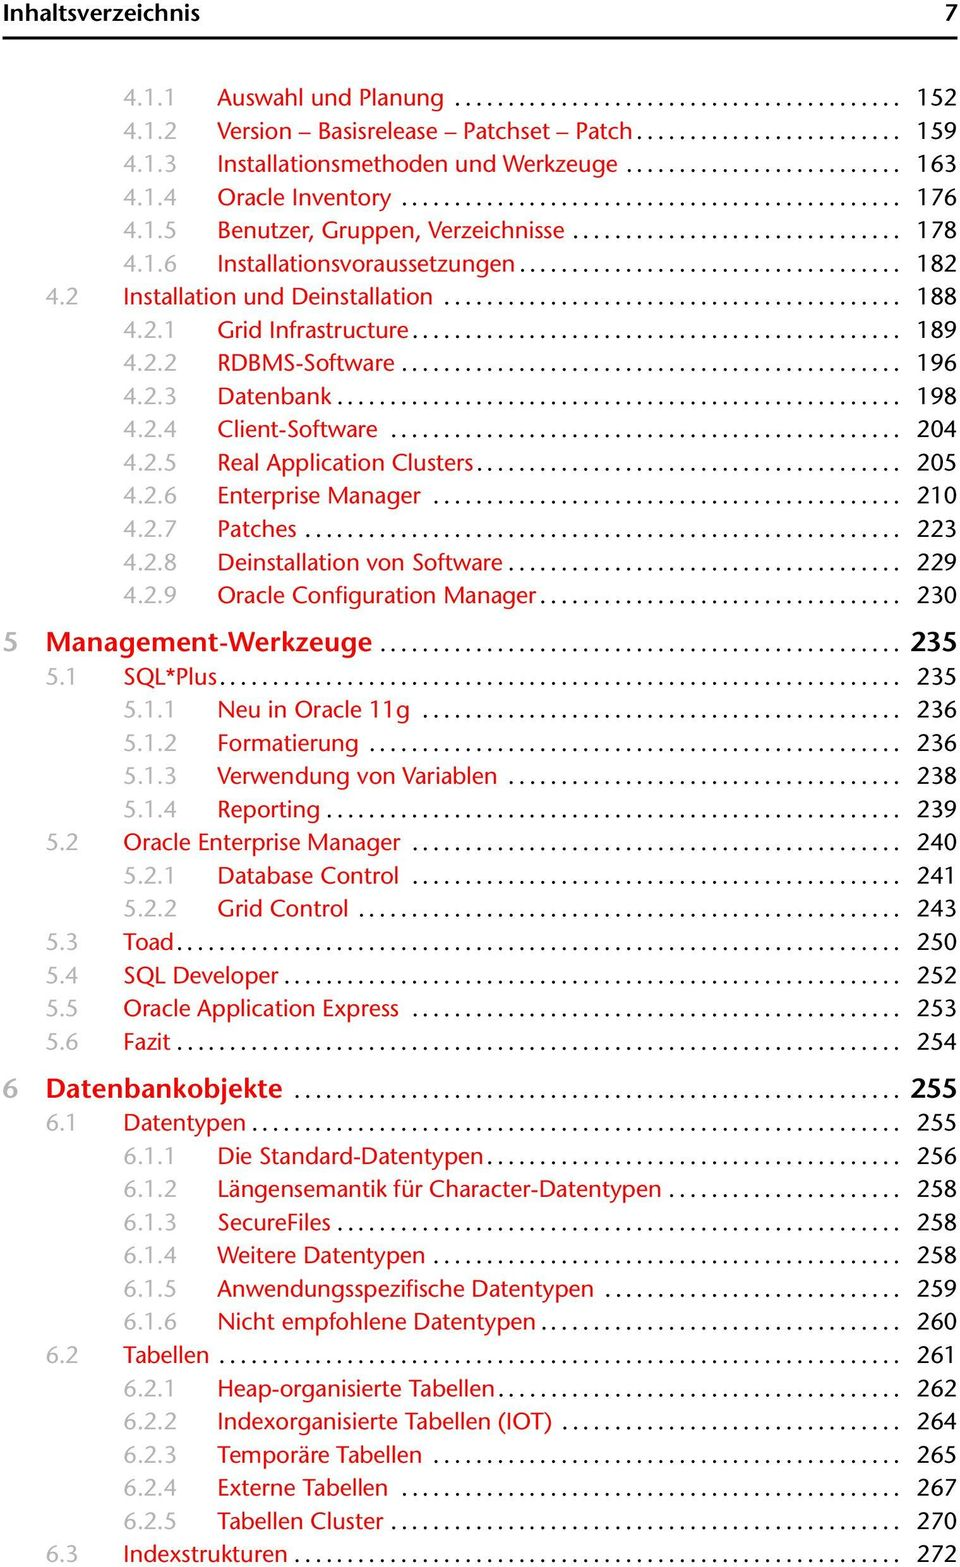 .. 204 4.2.5 Real Application Clusters... 205 4.2.6 Enterprise Manager... 210 4.2.7 Patches... 223 4.2.8 Deinstallation von Software... 229 4.2.9 Oracle Configuration Manager.